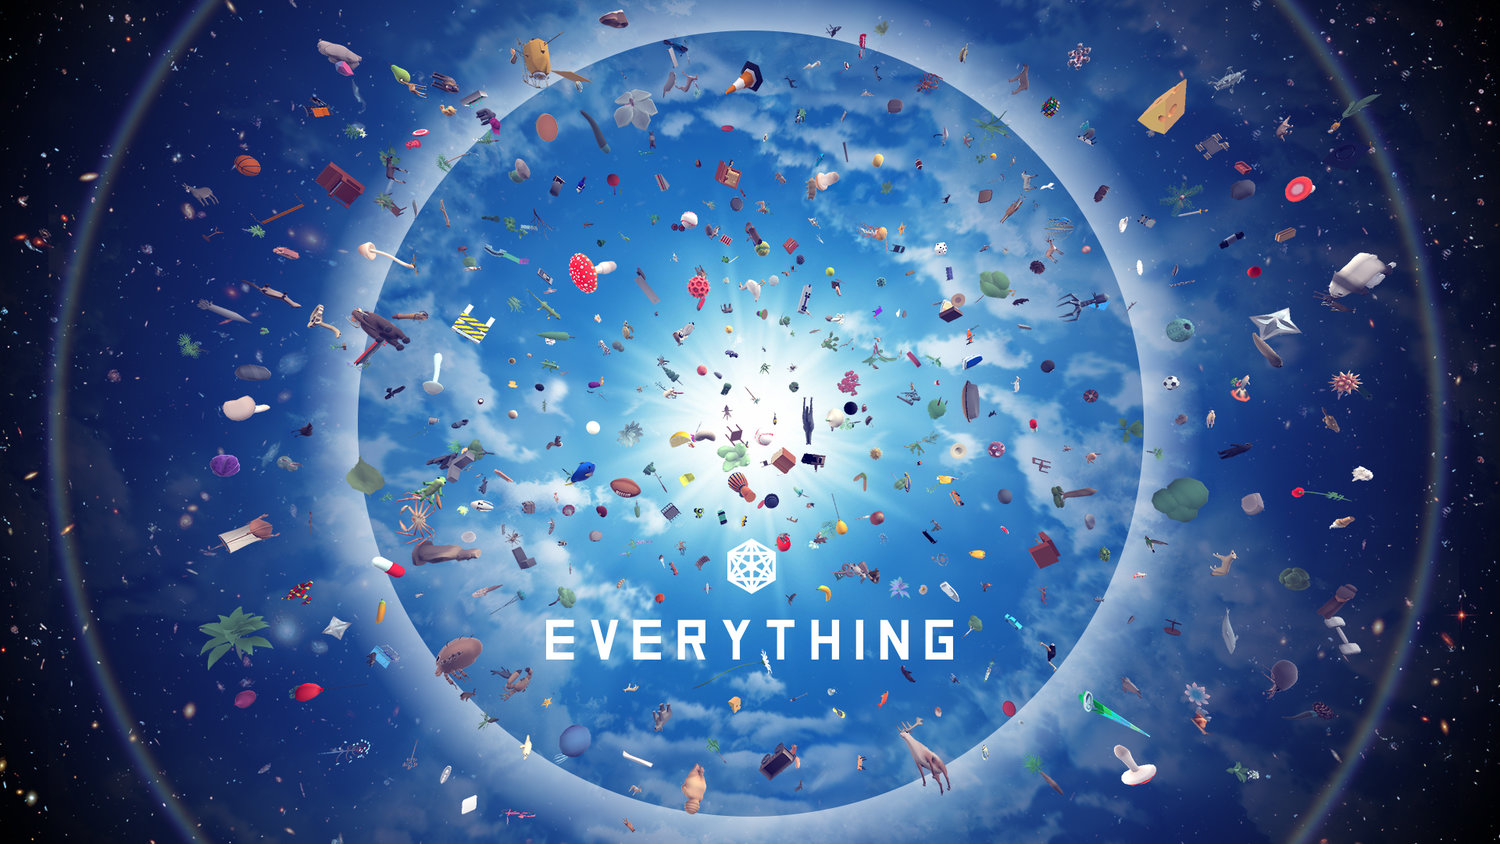 ☁️ EVERYTHING ☁️ - out now on PS4, PC, Mac & Linux